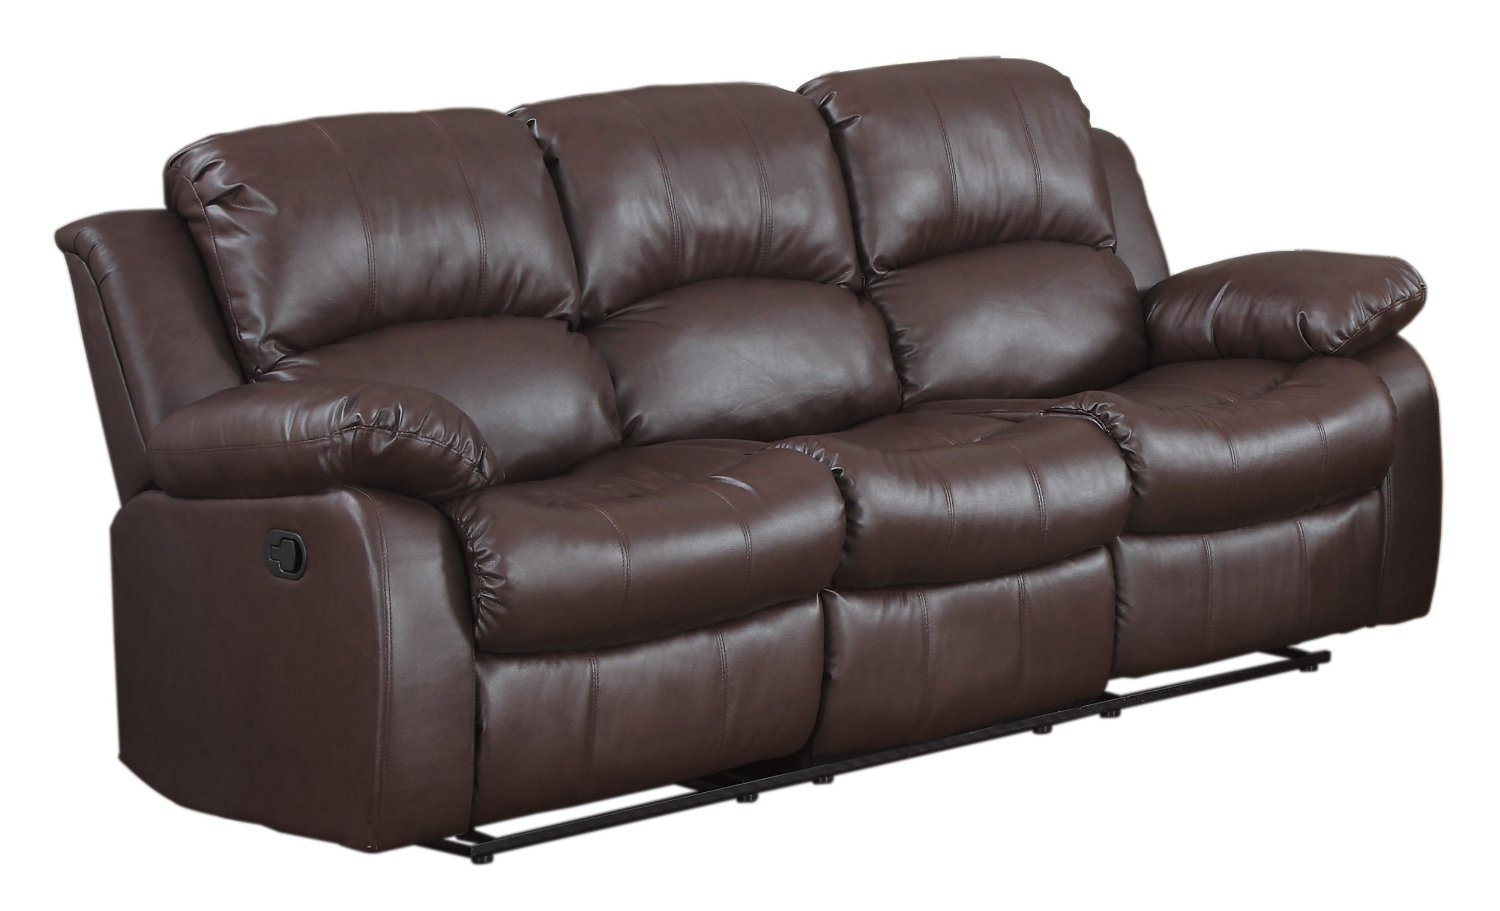 Cozy Amazon.com: Bonded Leather Double Recliner Sofa Living Room Reclining Couch  (Brown): Kitchen 3 seater leather sofa